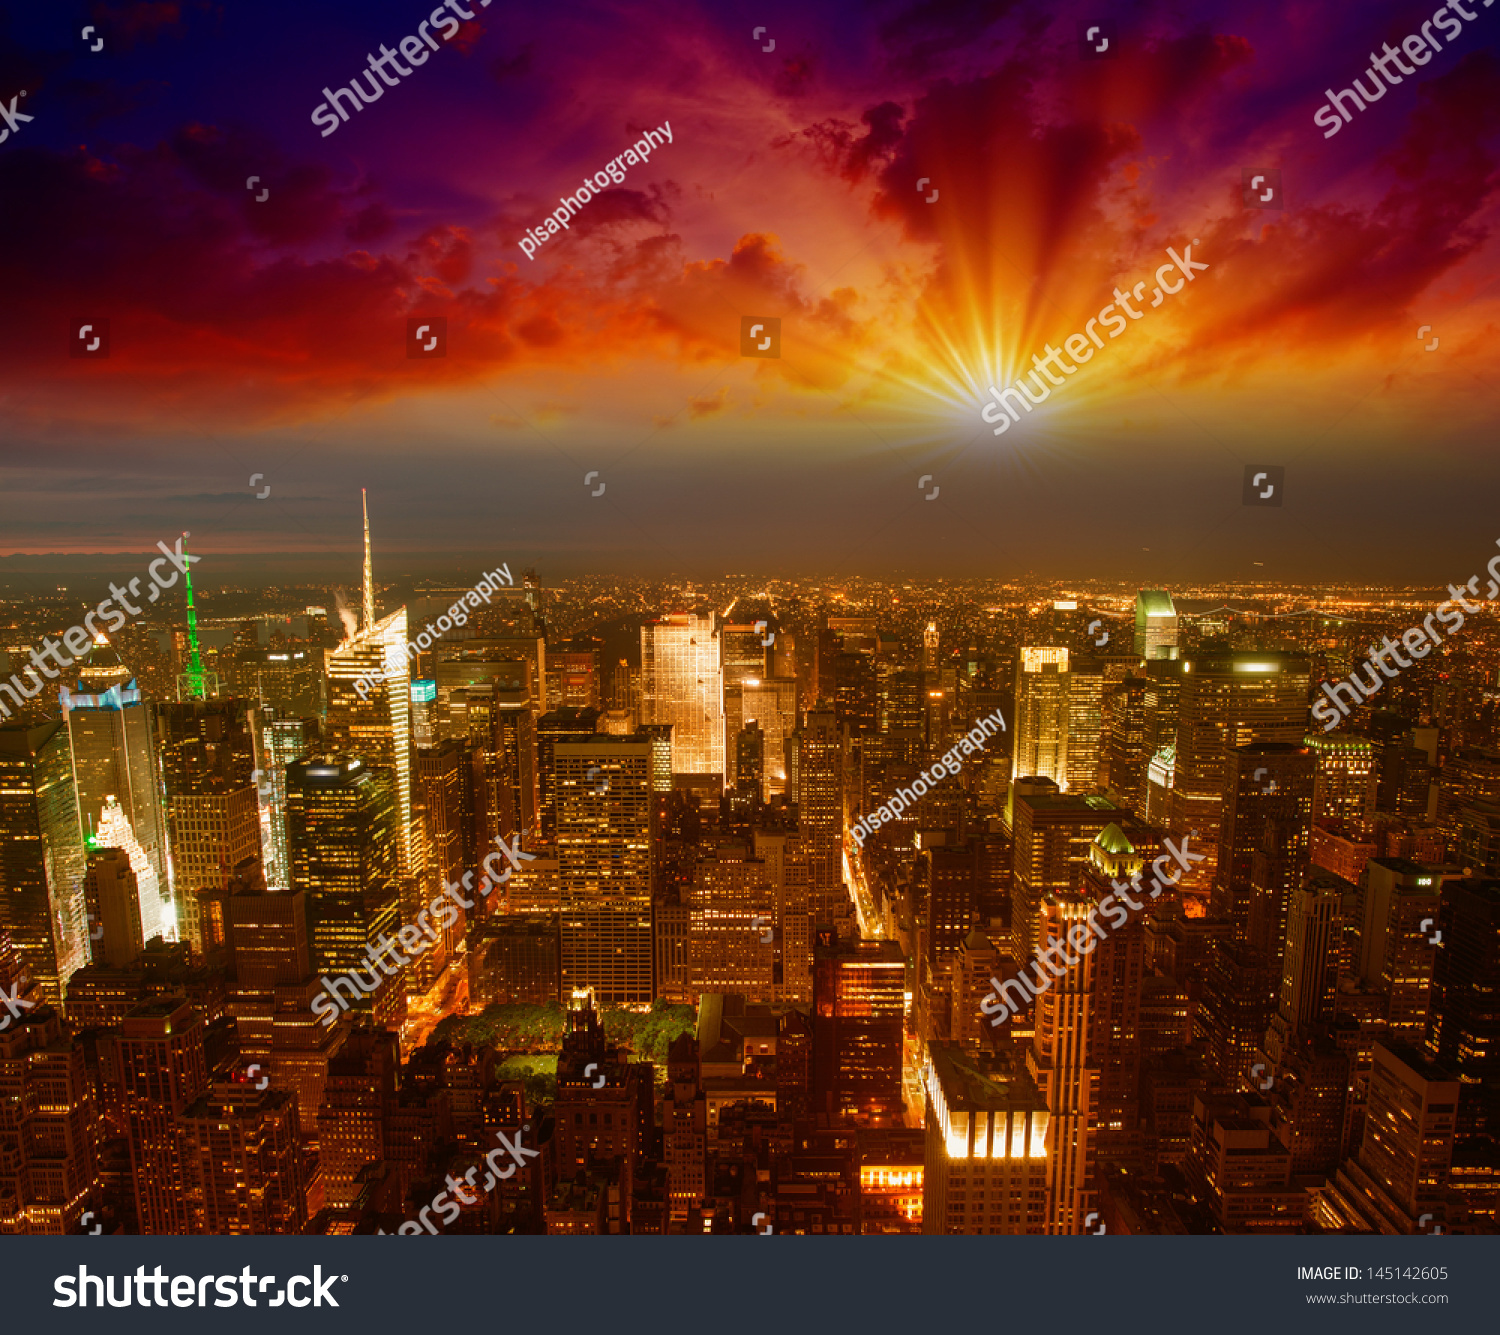 Sunset Empire Transportation Schedule Stock Photo Manhattan Nyc Spectacular Sunset View Of